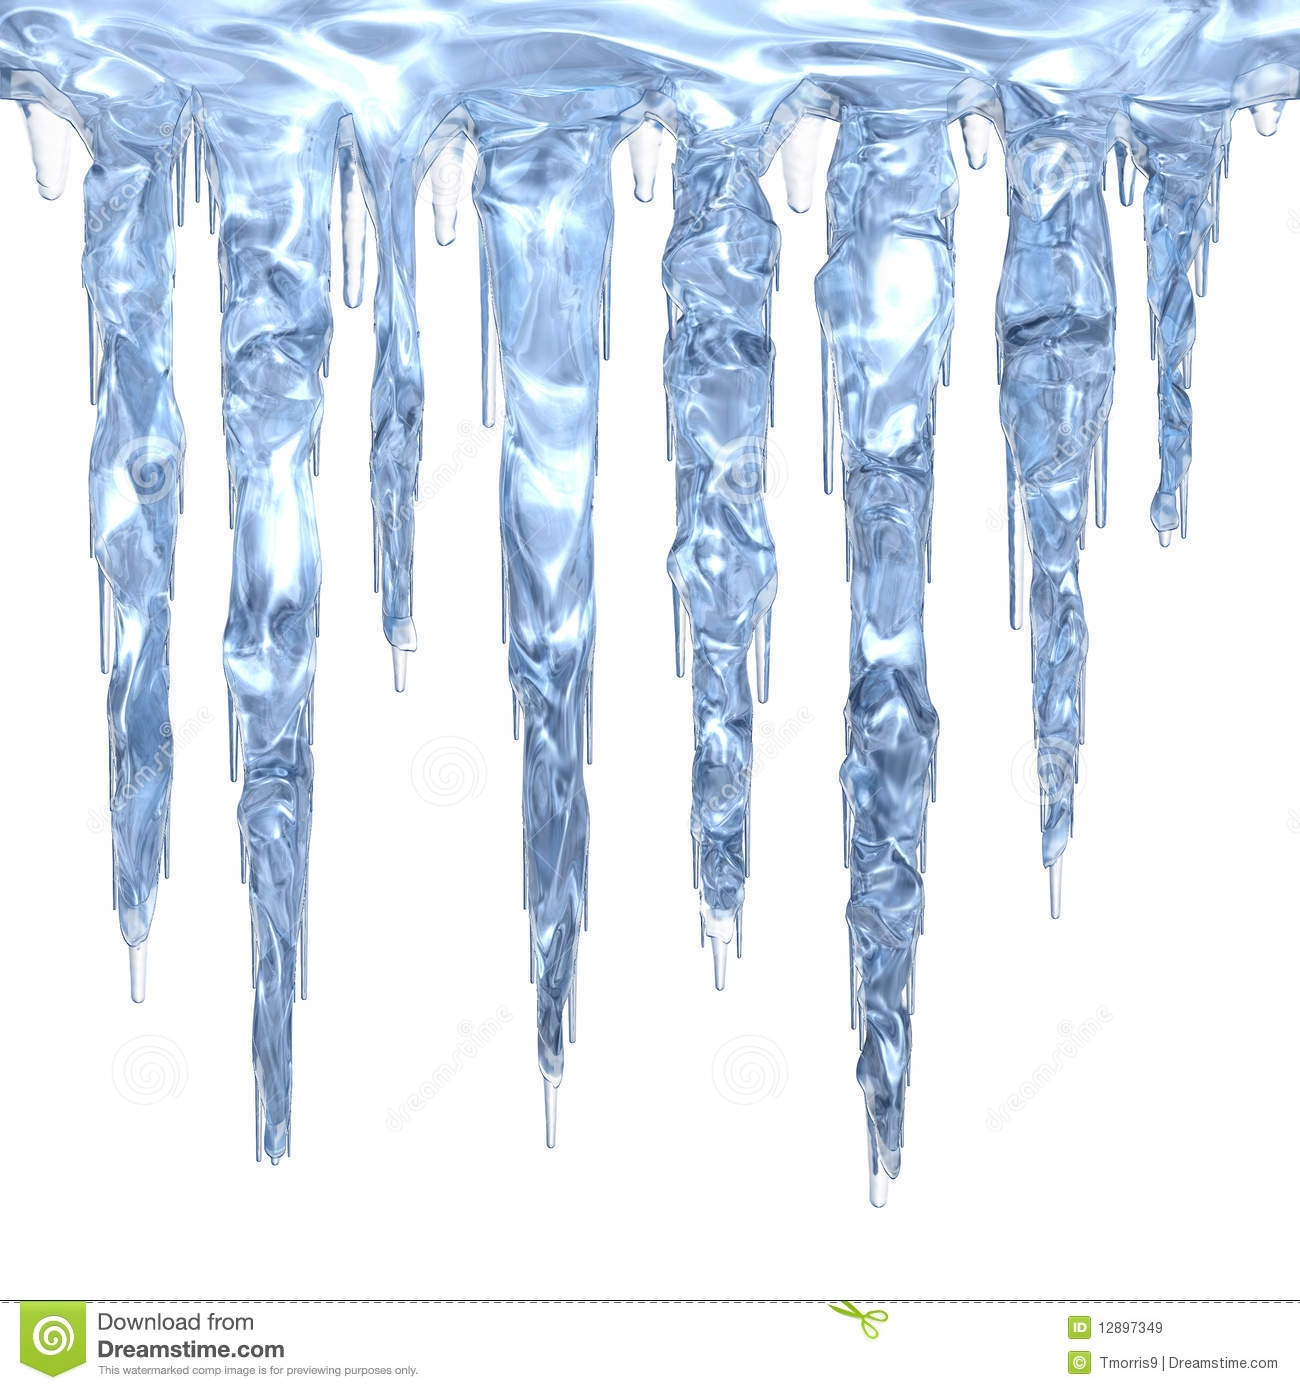 New collection digital coloring. Icicles clipart